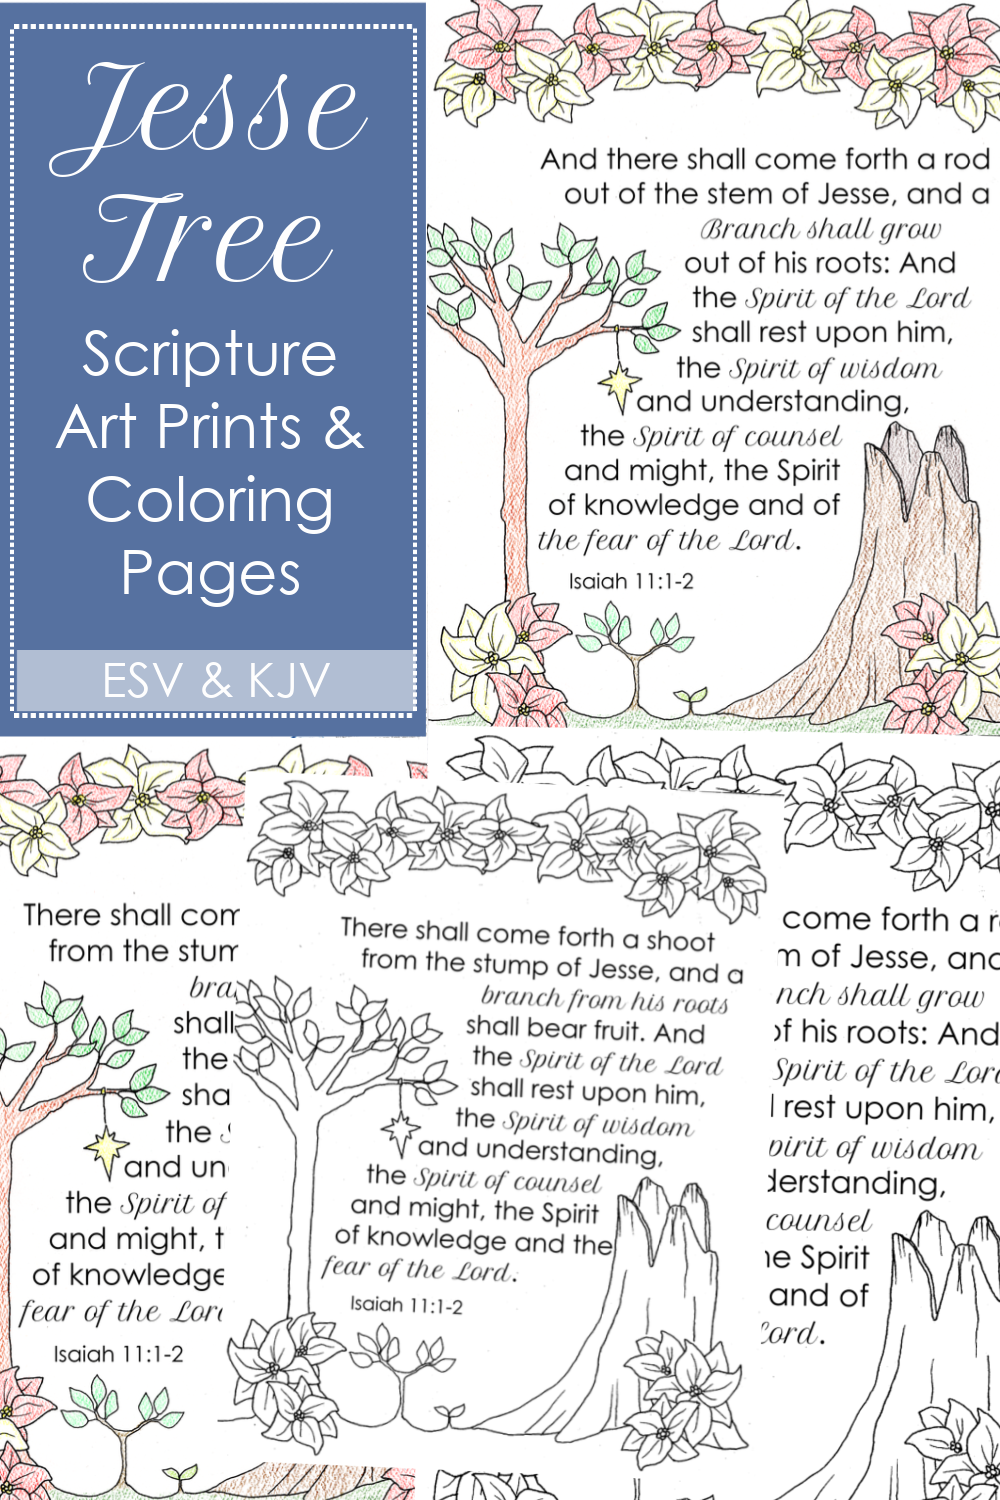 The Jesse Tree is a Christmas activity that families use to walk through the story of Jesus from creation to incarnation. Begin the Jesse Tree tradition in your home during Advent this year and use this beautiful custom-illustrated Jesse Tree Scripture art print and coloring page to start!